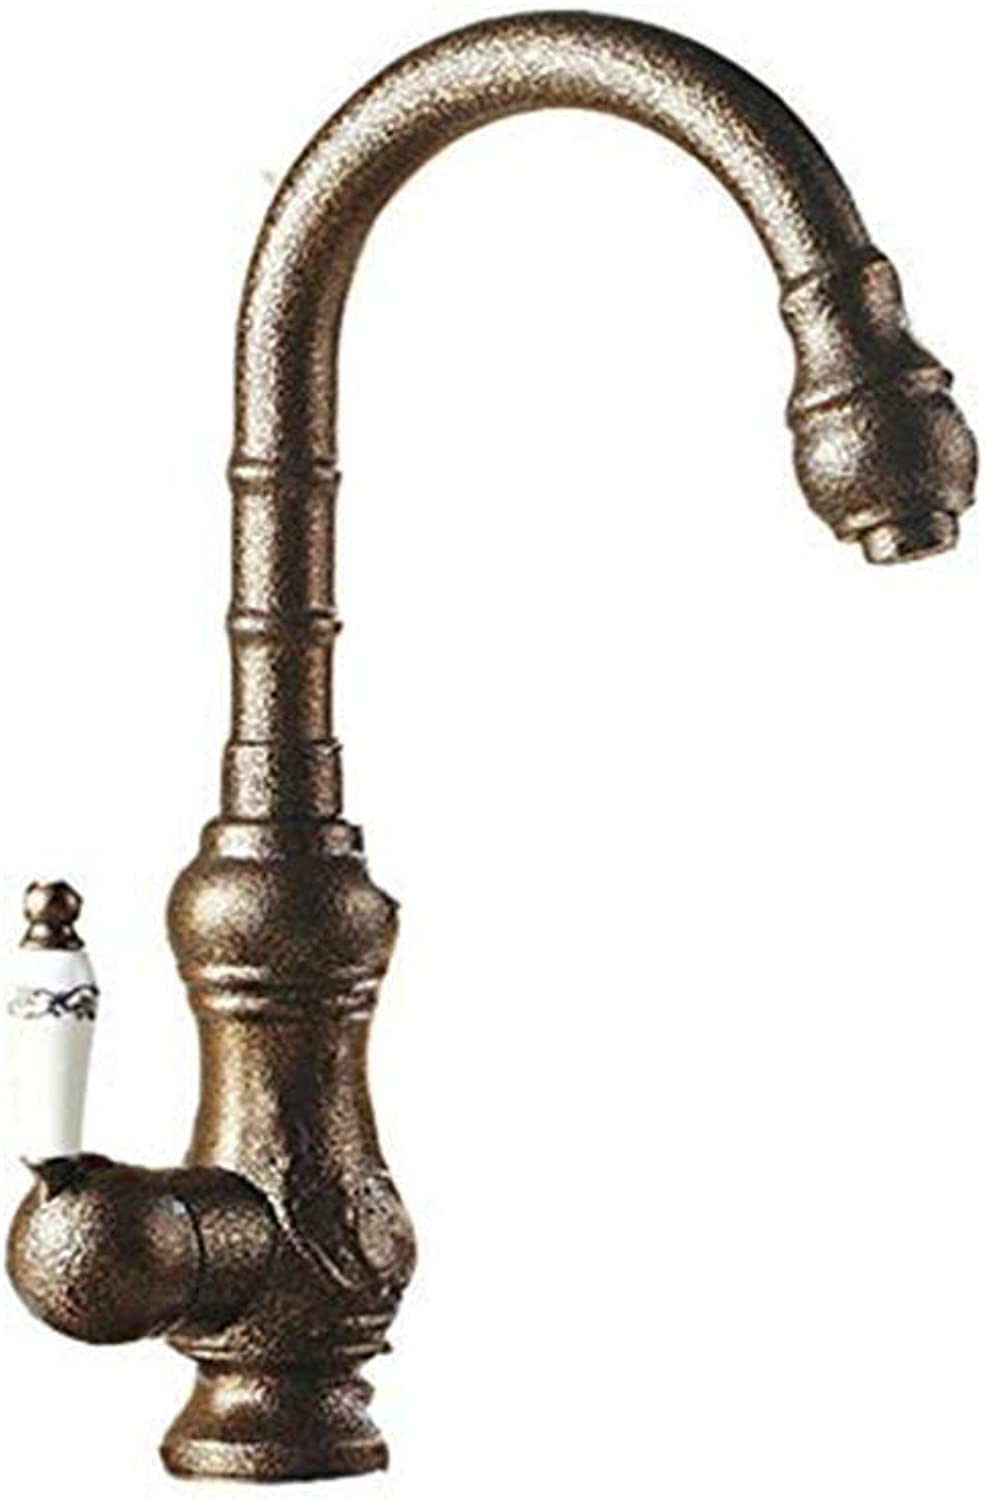 Retro Faucet Double Handle Bathroom Sink Faucet Hot and Cold Water Mixing